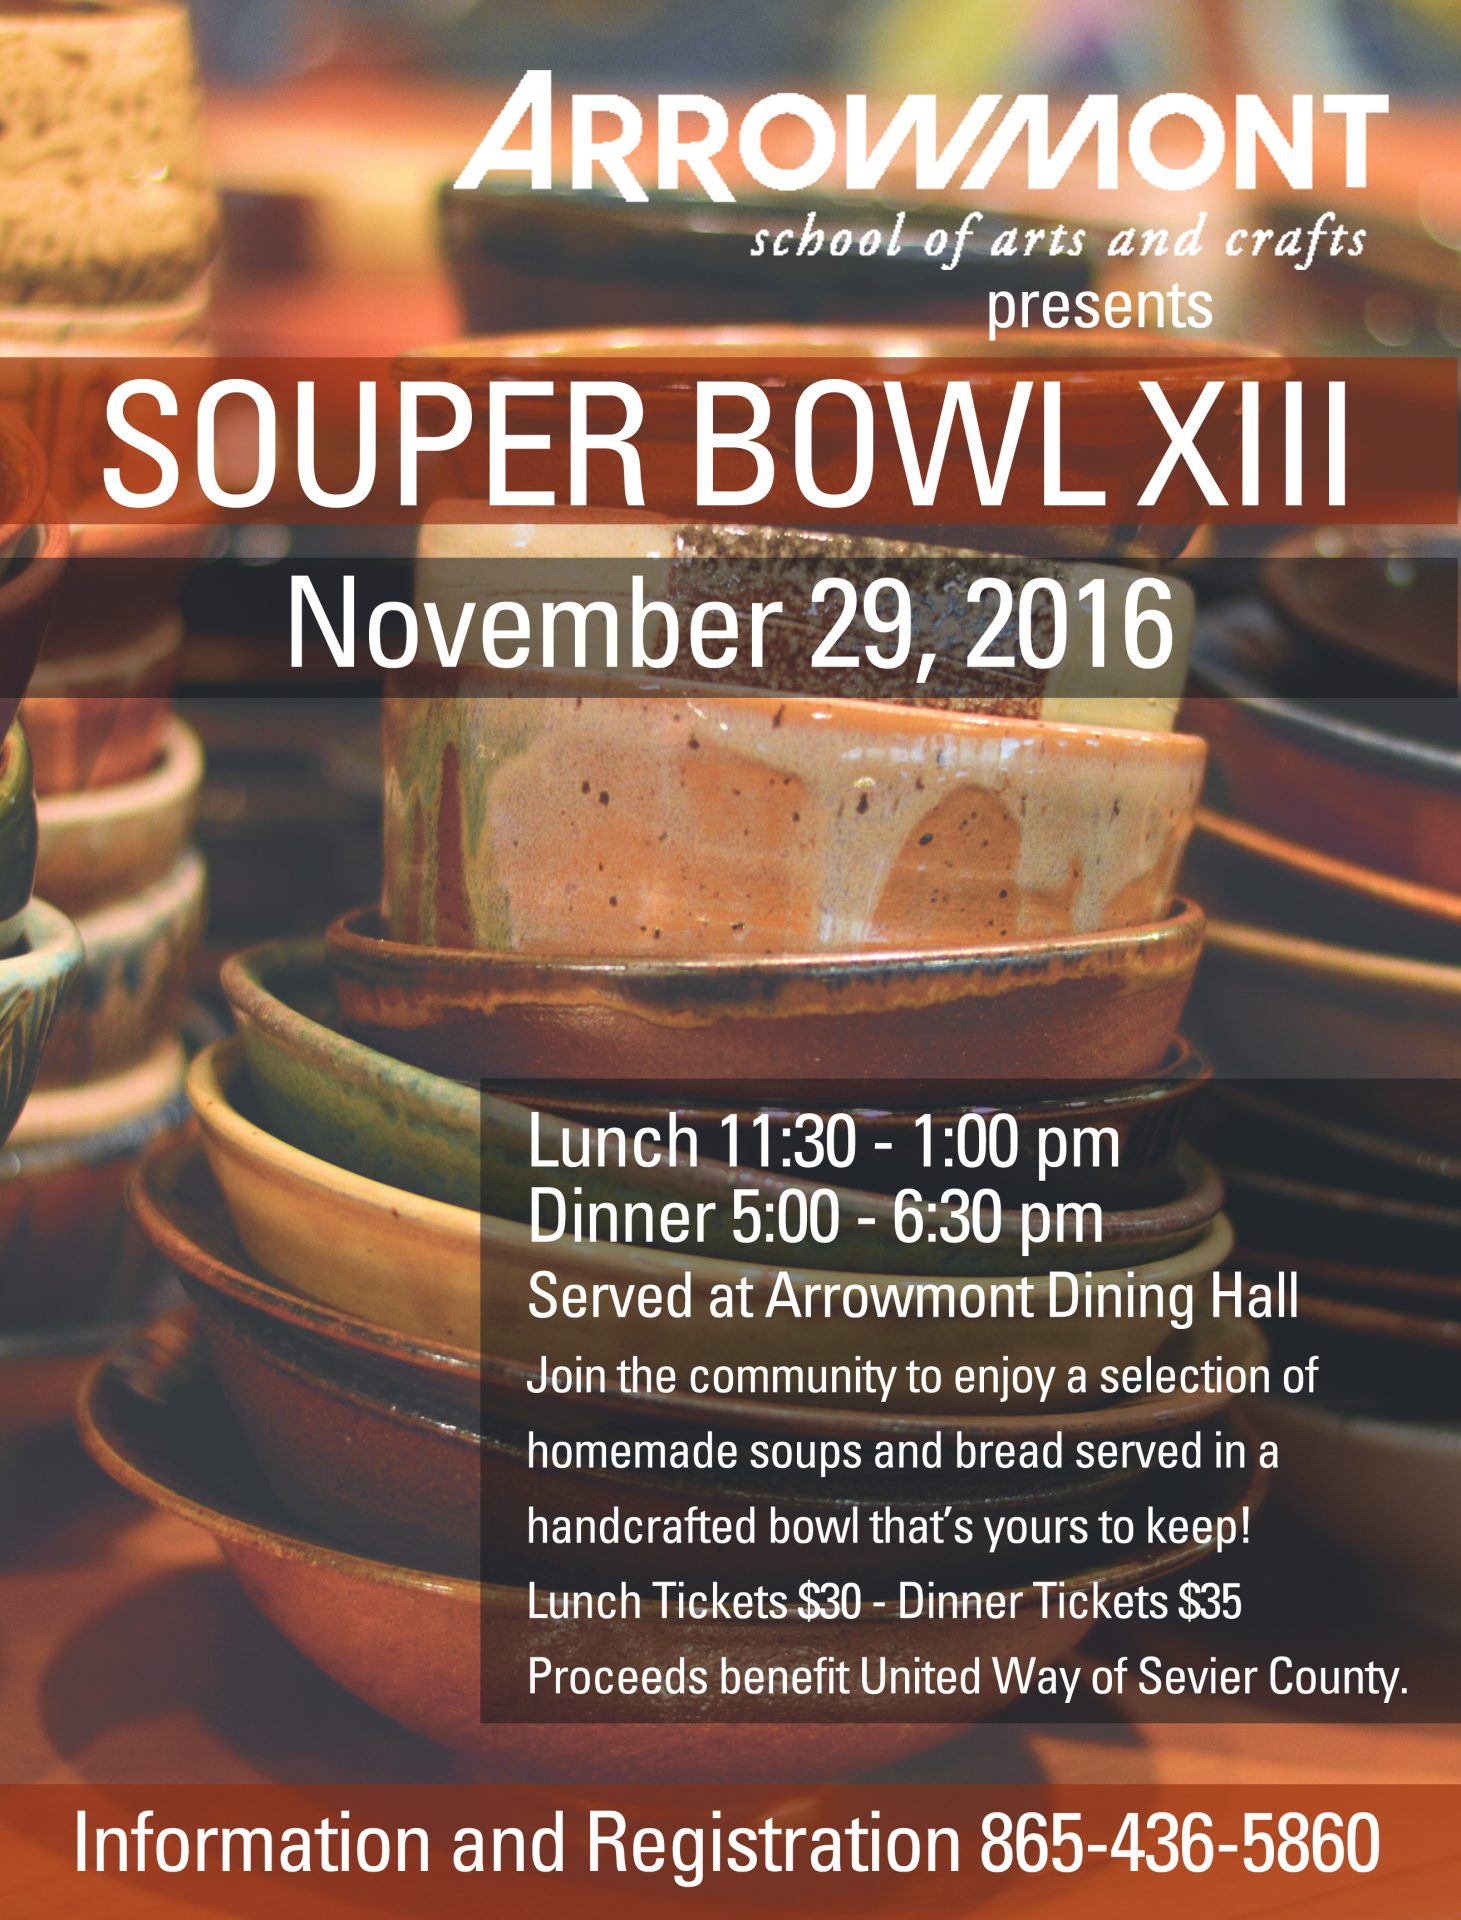 souper bowl xiii school of arts and crafts souper bowl xiii flyer